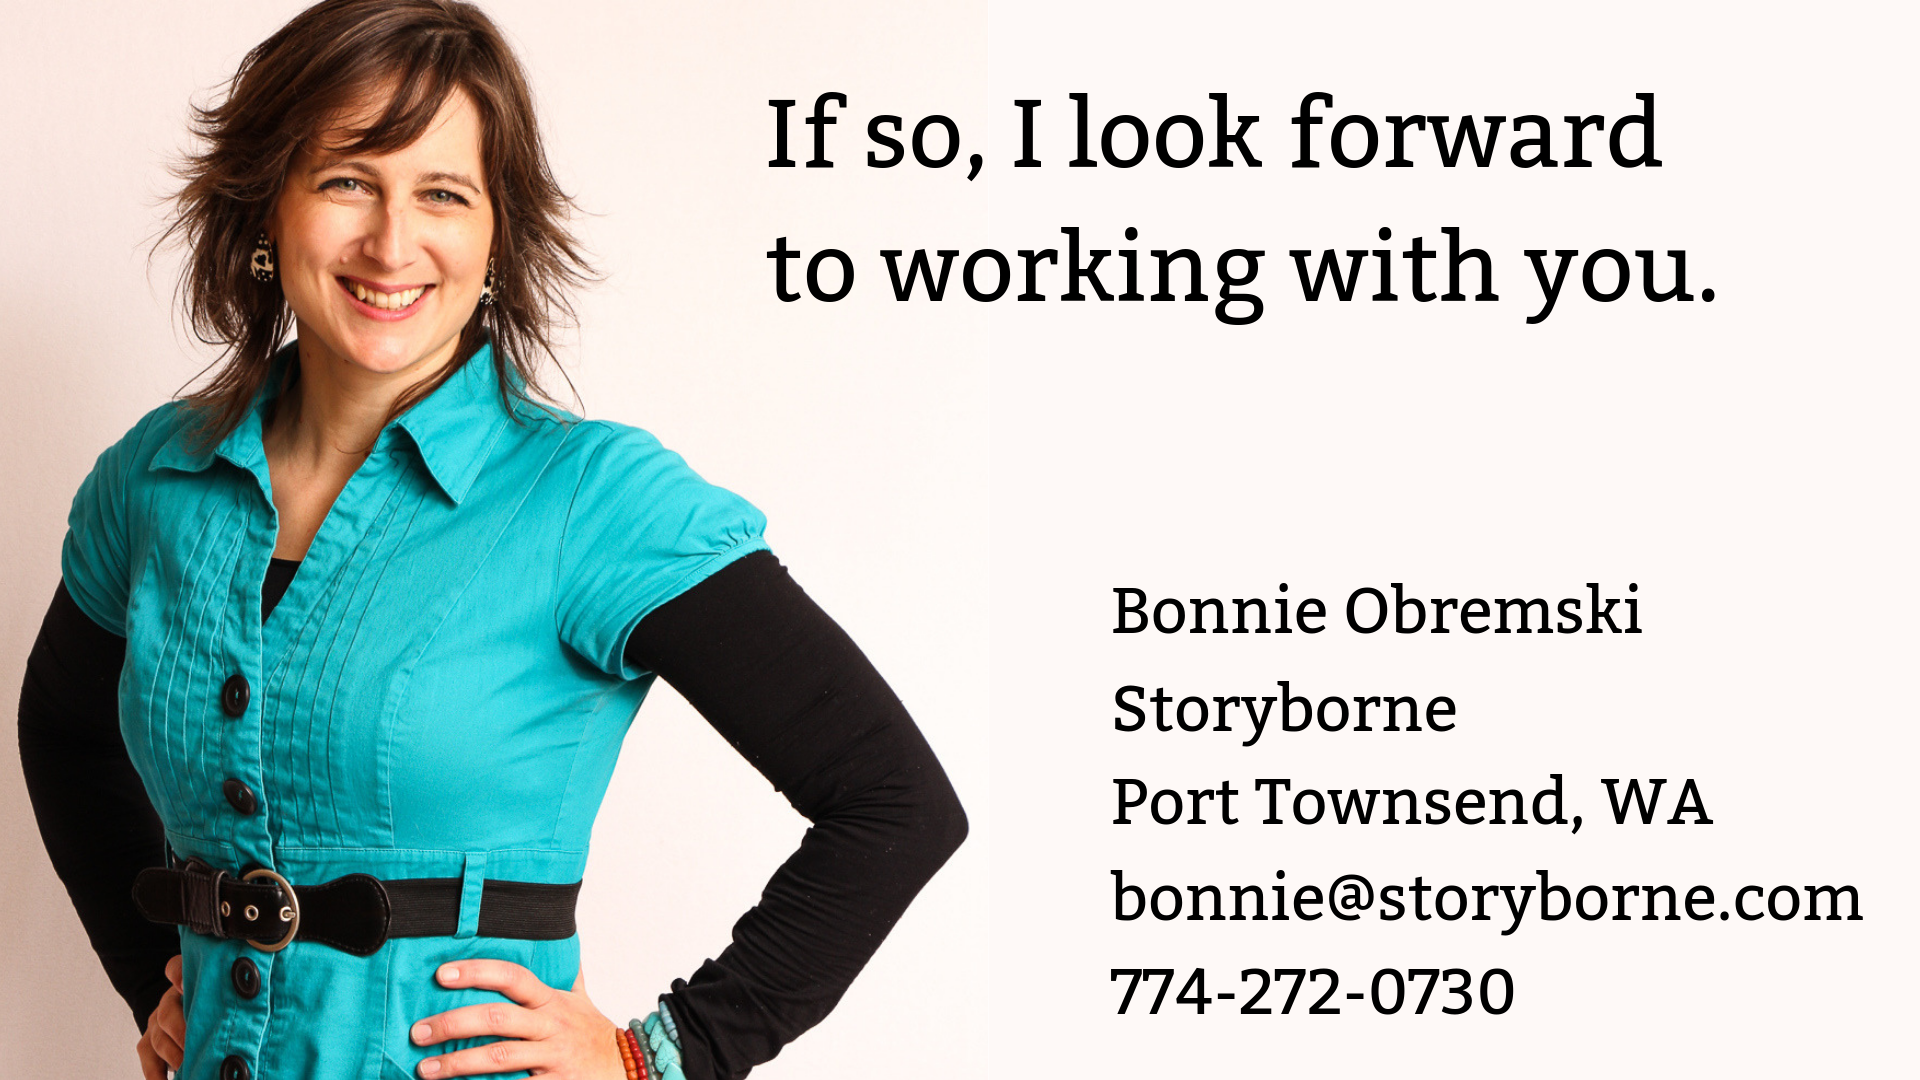 Bonnie-Obremski-Storyborne-Marketing-And-Project-Management-Services-Contact Bonnie.PNG